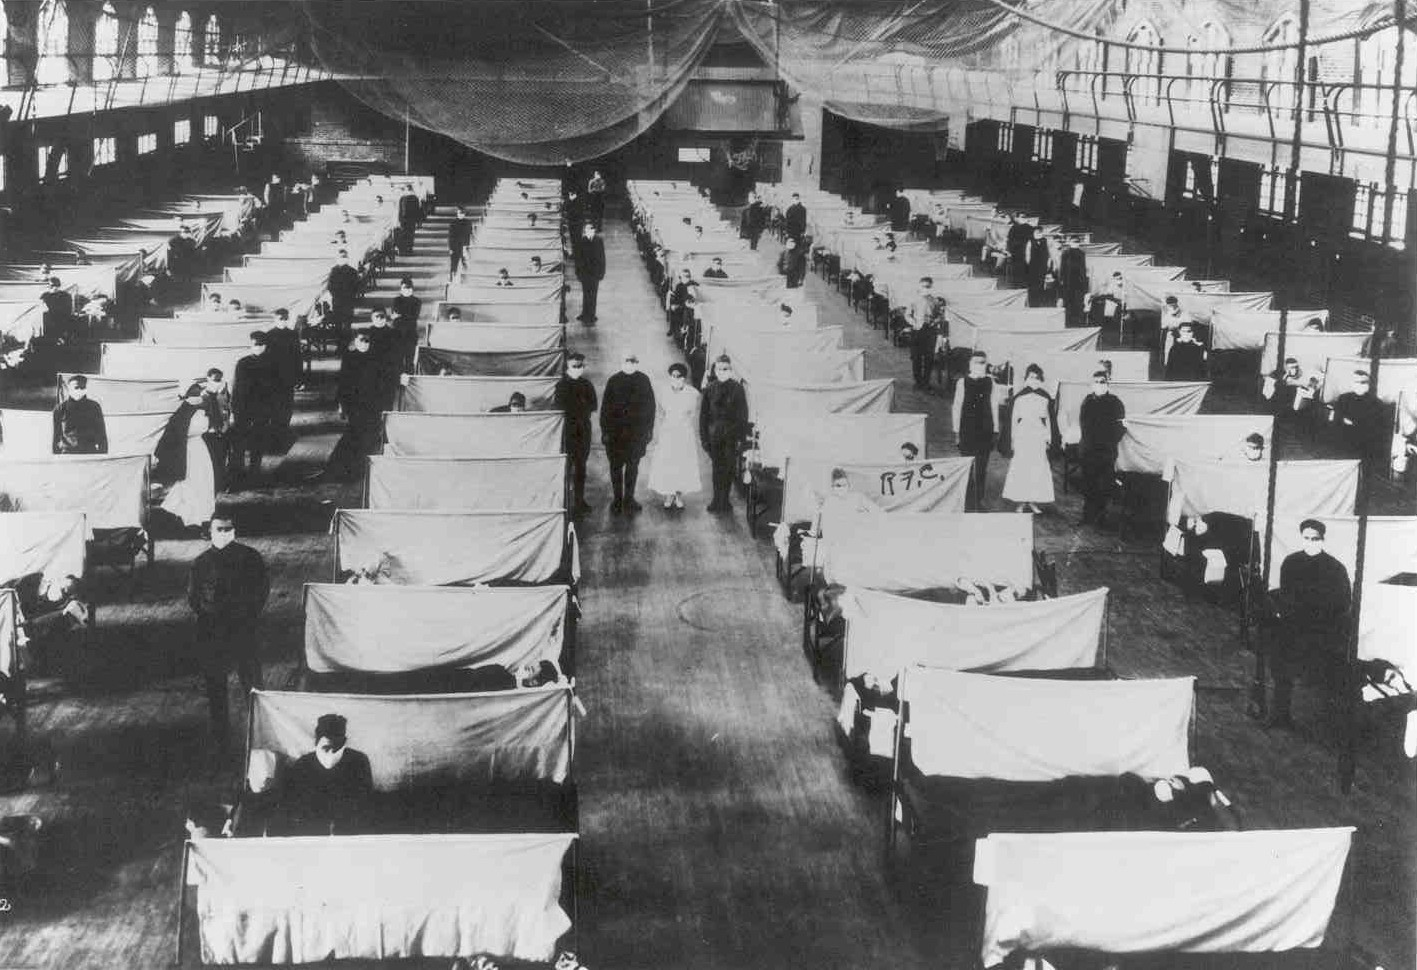 Influenza: How the Great War helped create the greatest pandemic ever known | @GrrlScientist